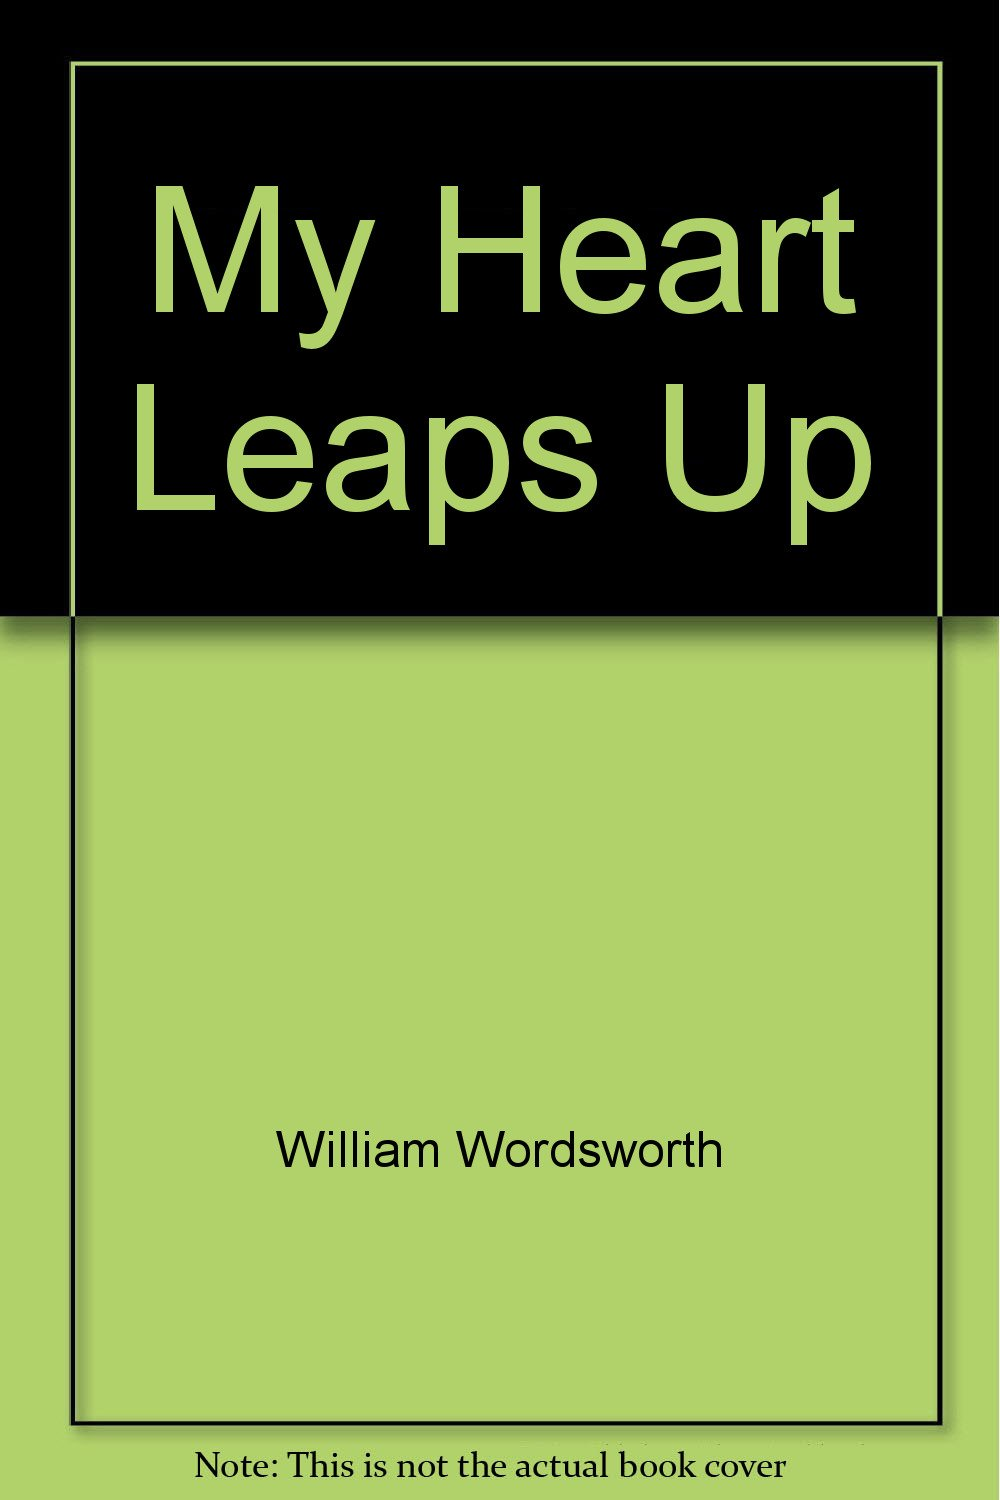 My Heart Leaps Up And Other Poems William Wordsworth